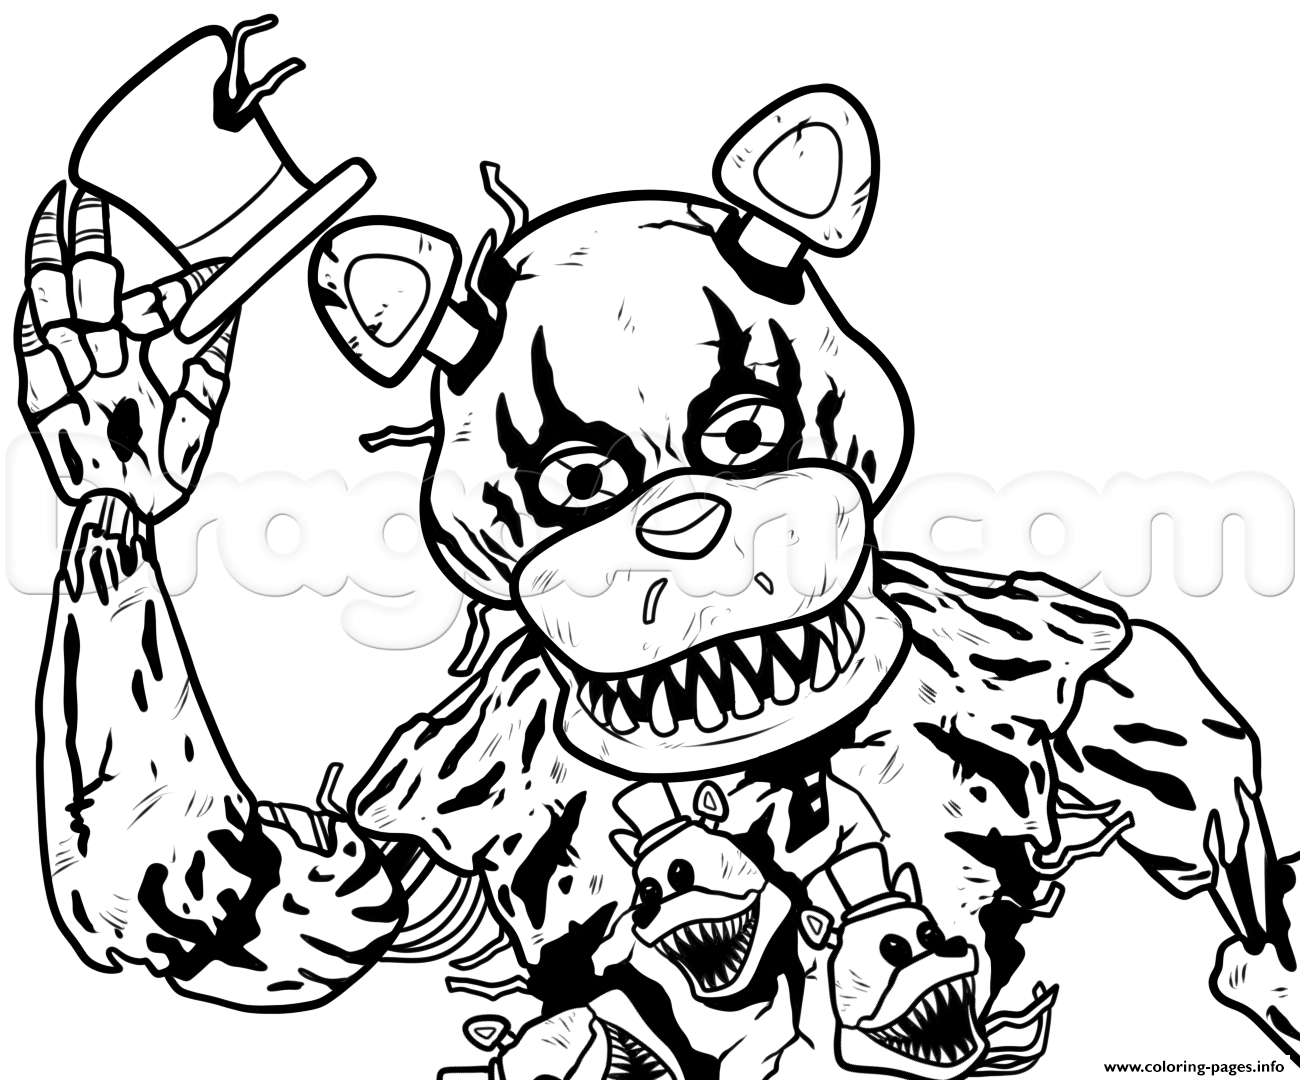 Five nights at freddy clipart black and white picture royalty free library Print draw nightmare freddy fazbear five nights at freddys fnaf ... picture royalty free library